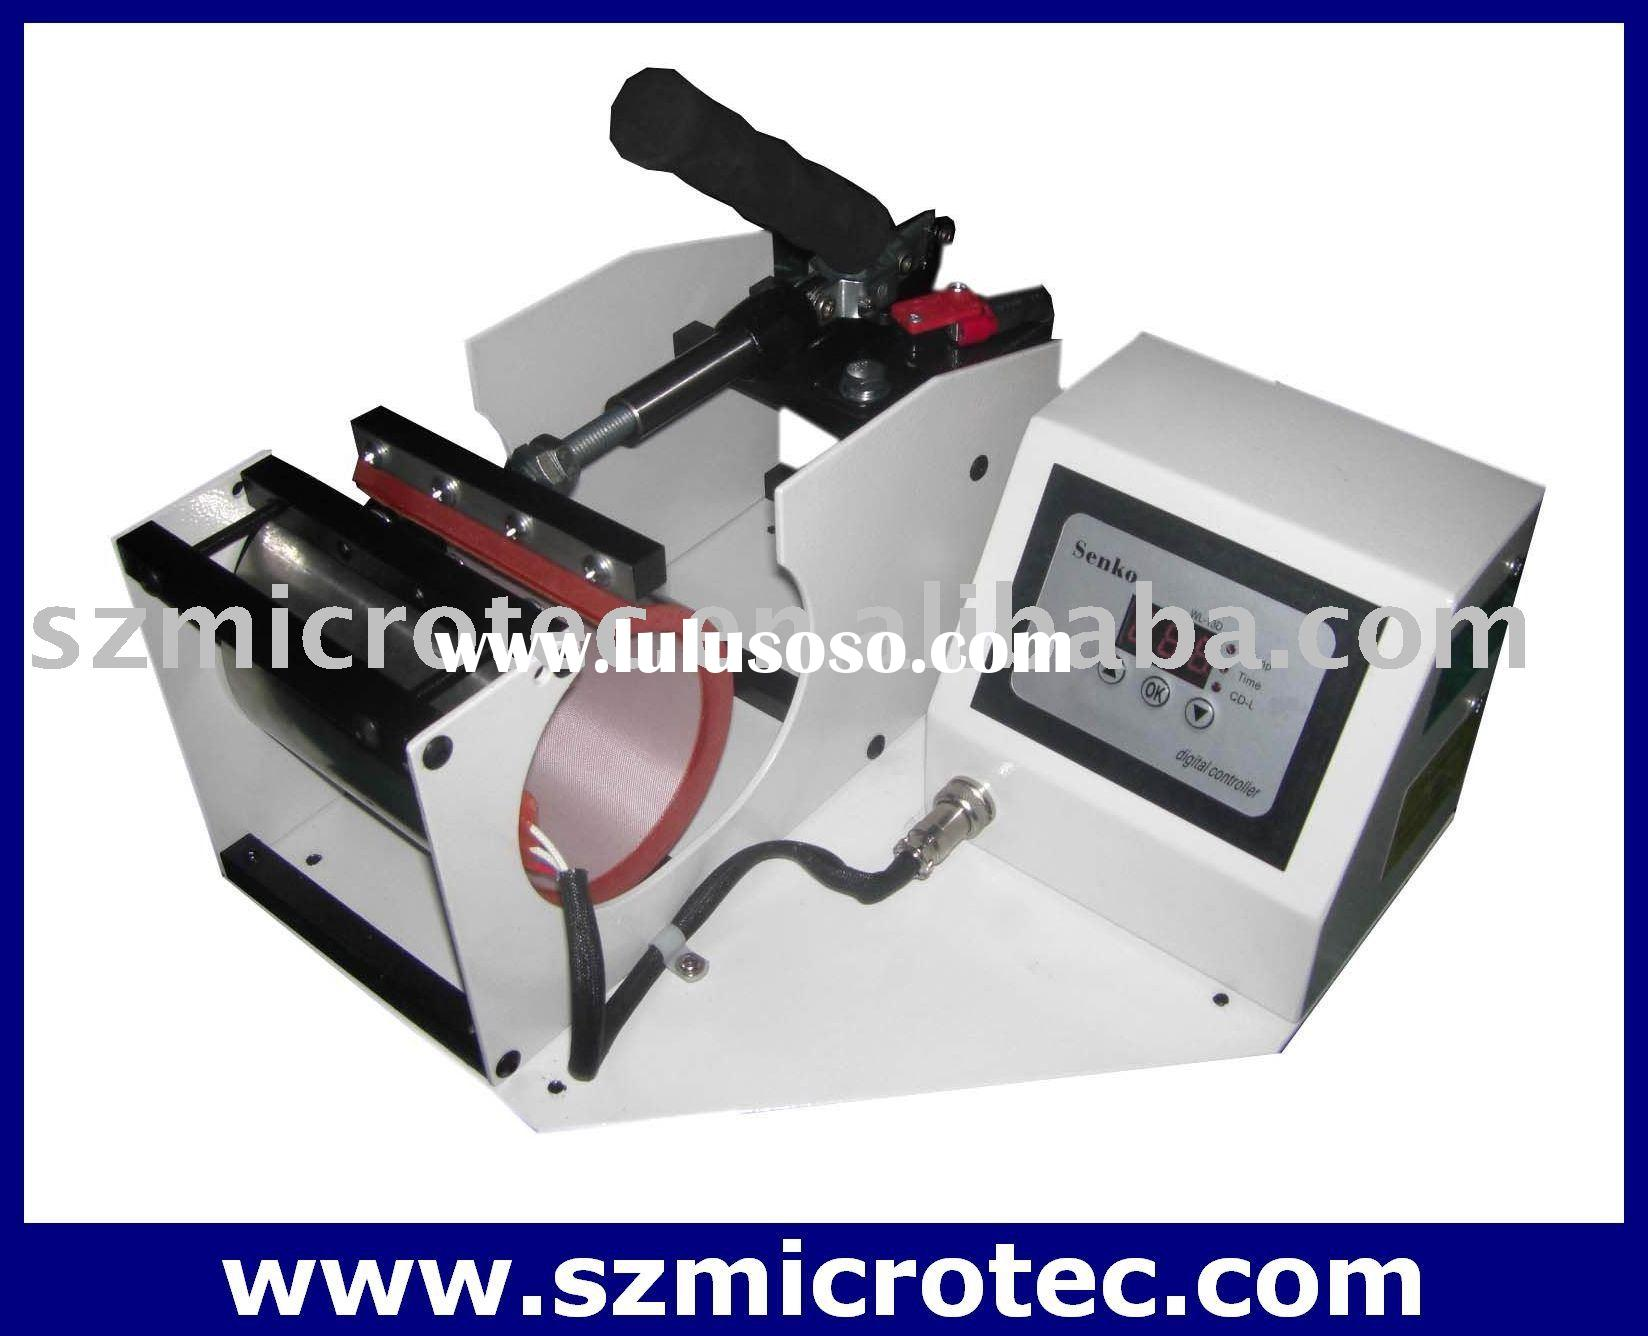 Latte Mug Heat Press Machine (transfer machine, sublimation machine)